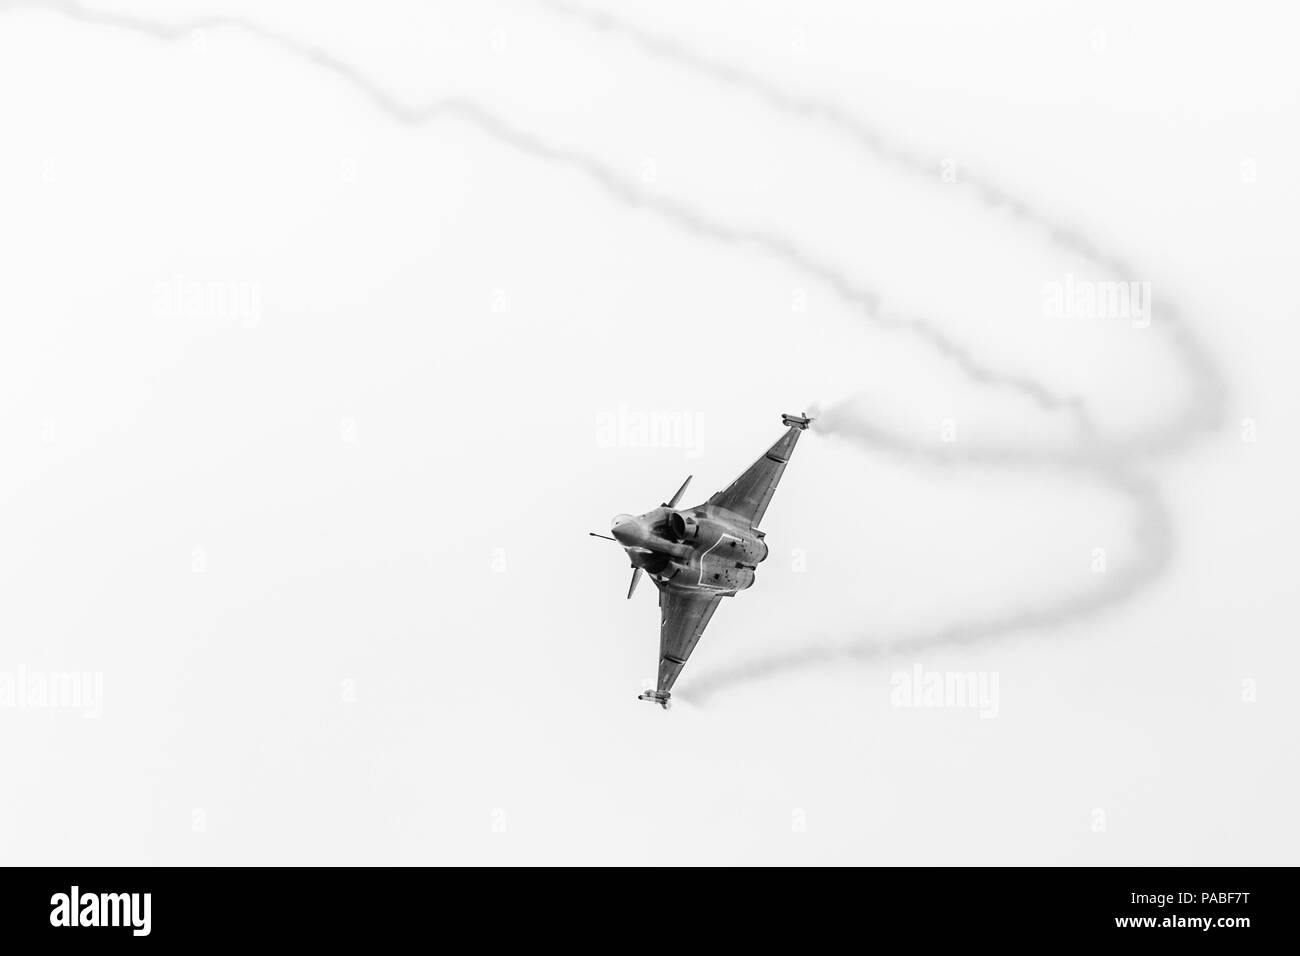 French Air Force Rafale C pictured at the 2018 Royal International Air Tattoo at RAF Fairford in Gloucestershire. - Stock Image